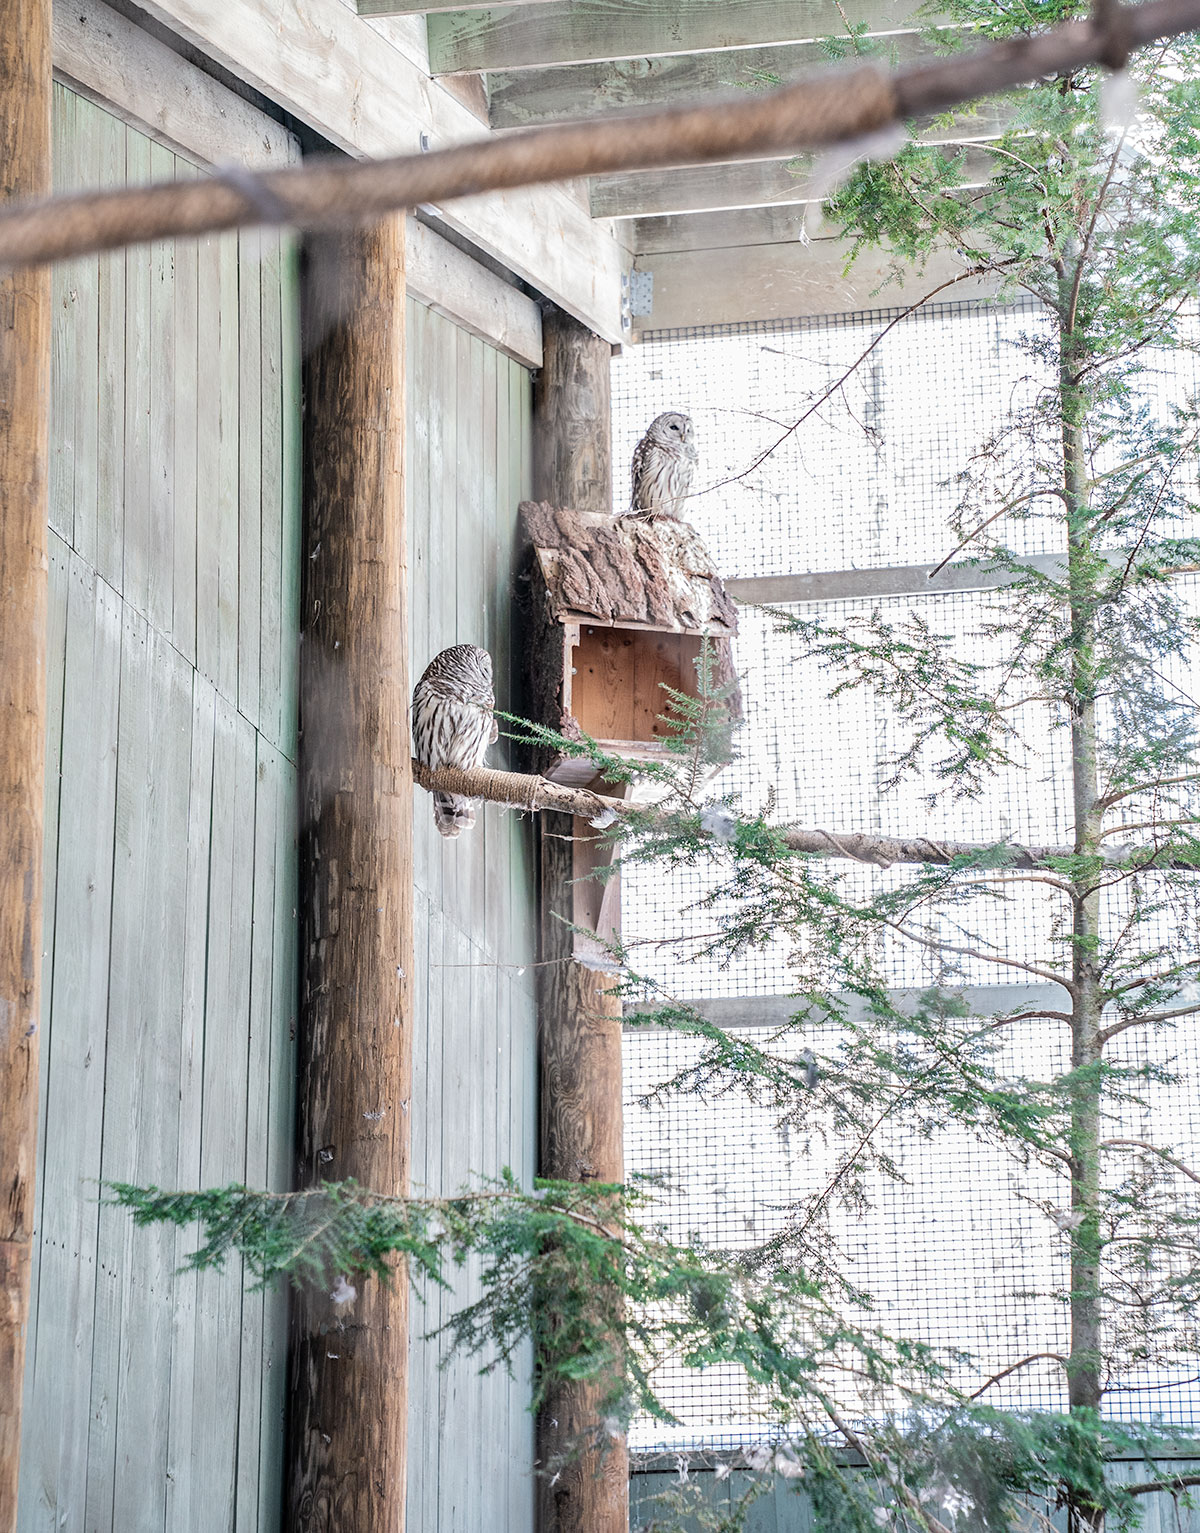 Vermont-Institute-of-Natural-Science-Owls